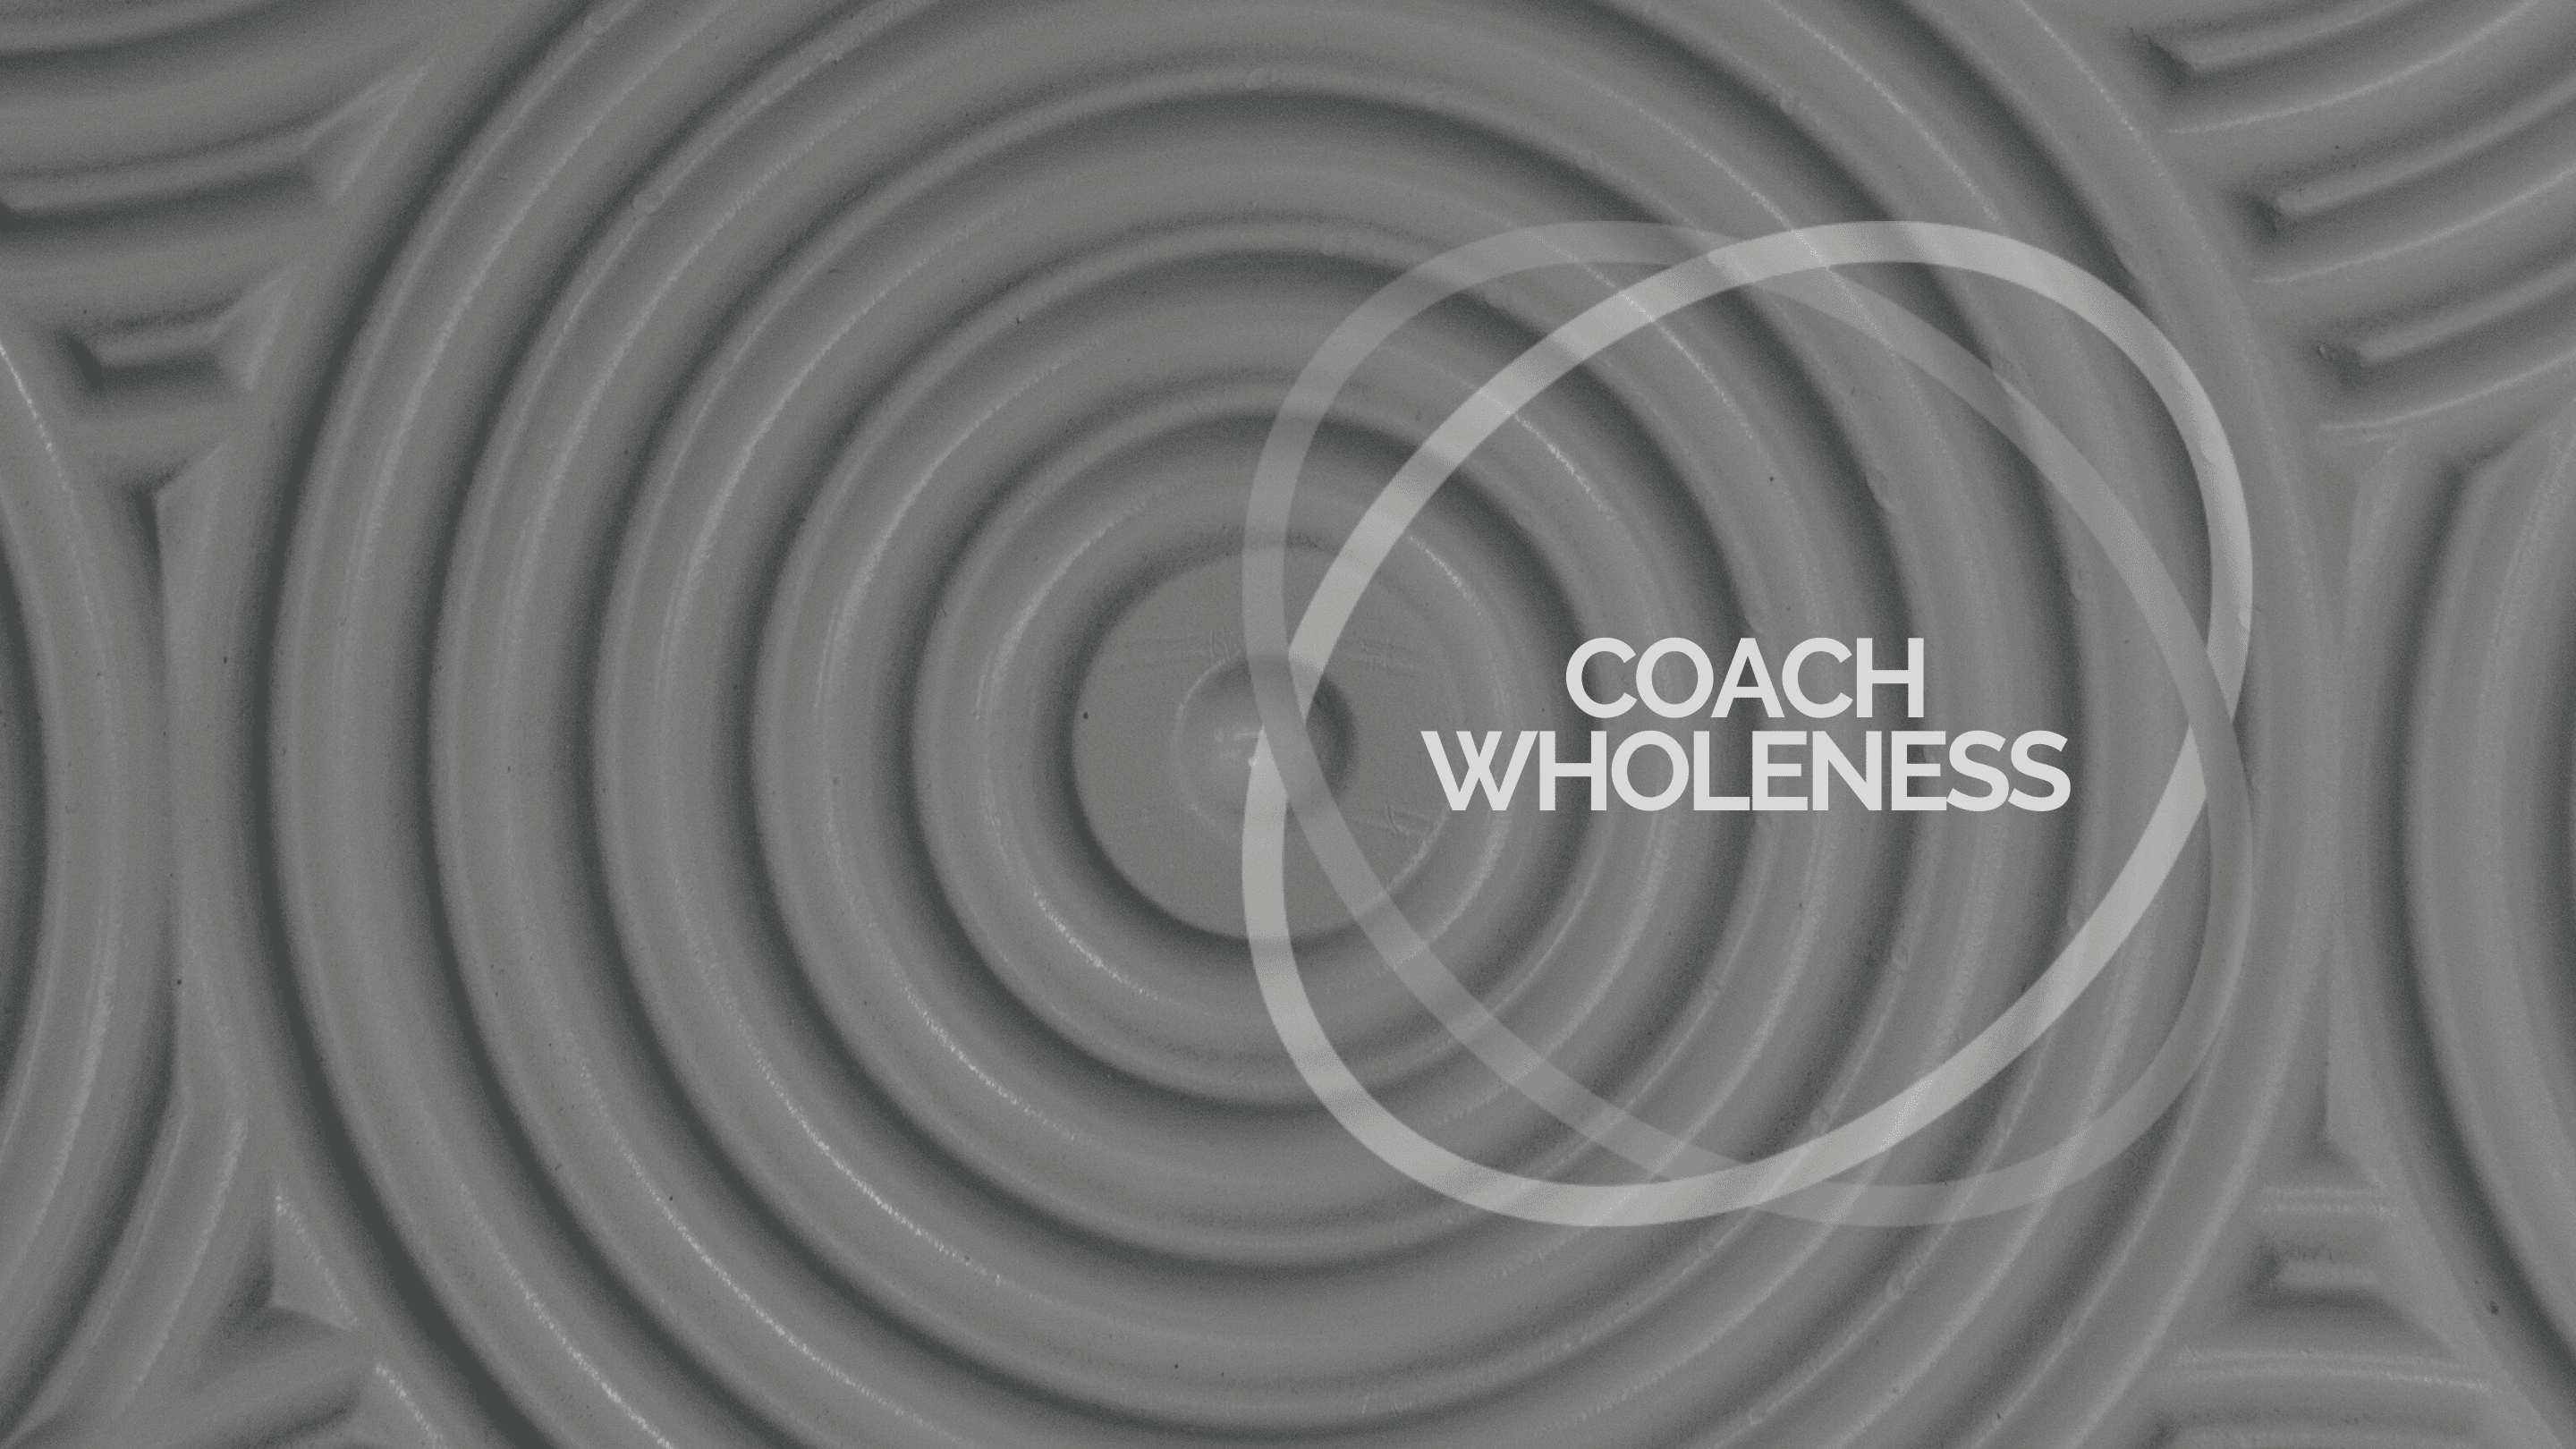 coach relationships to heal wholeness